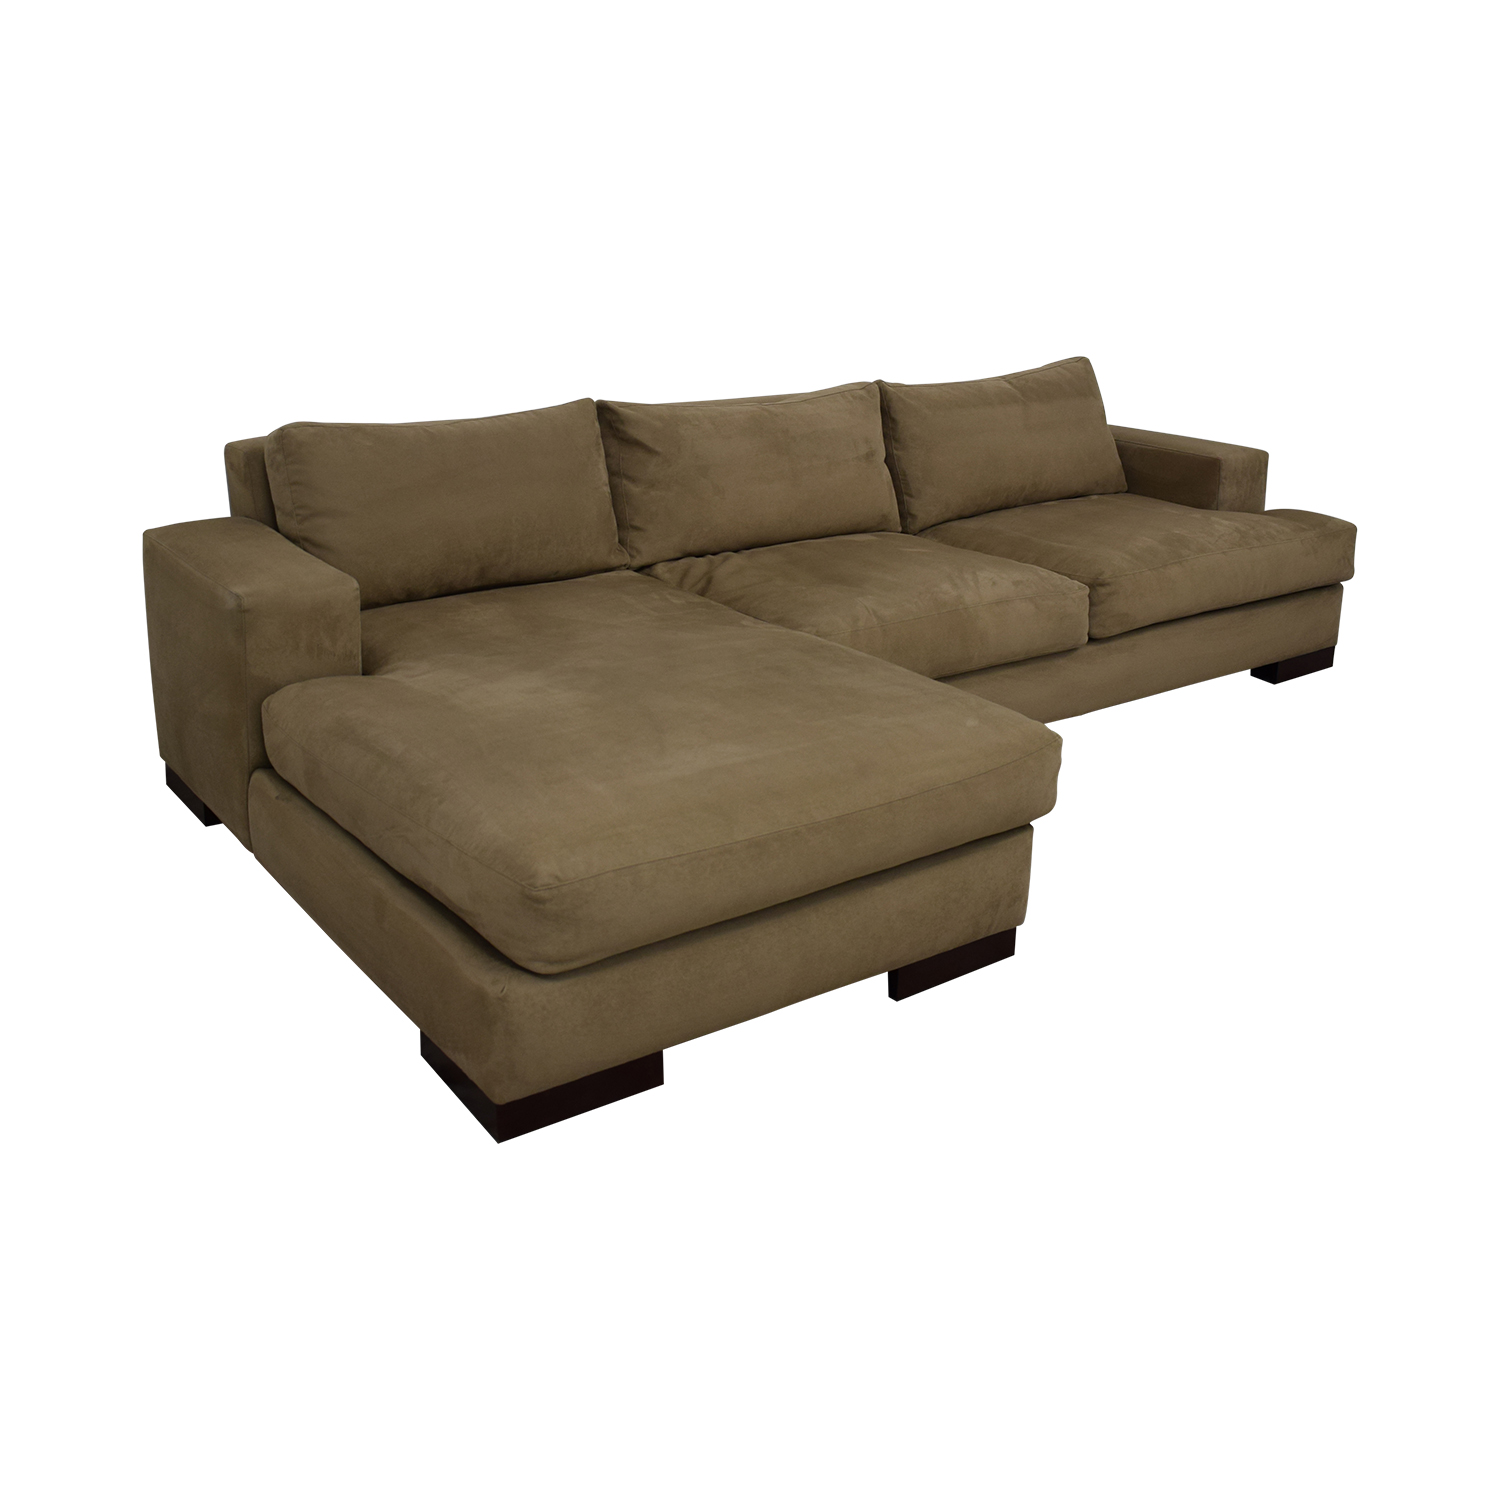 78% OFF - American Leather American Leather Chaise Sectional Sofa / Sofas